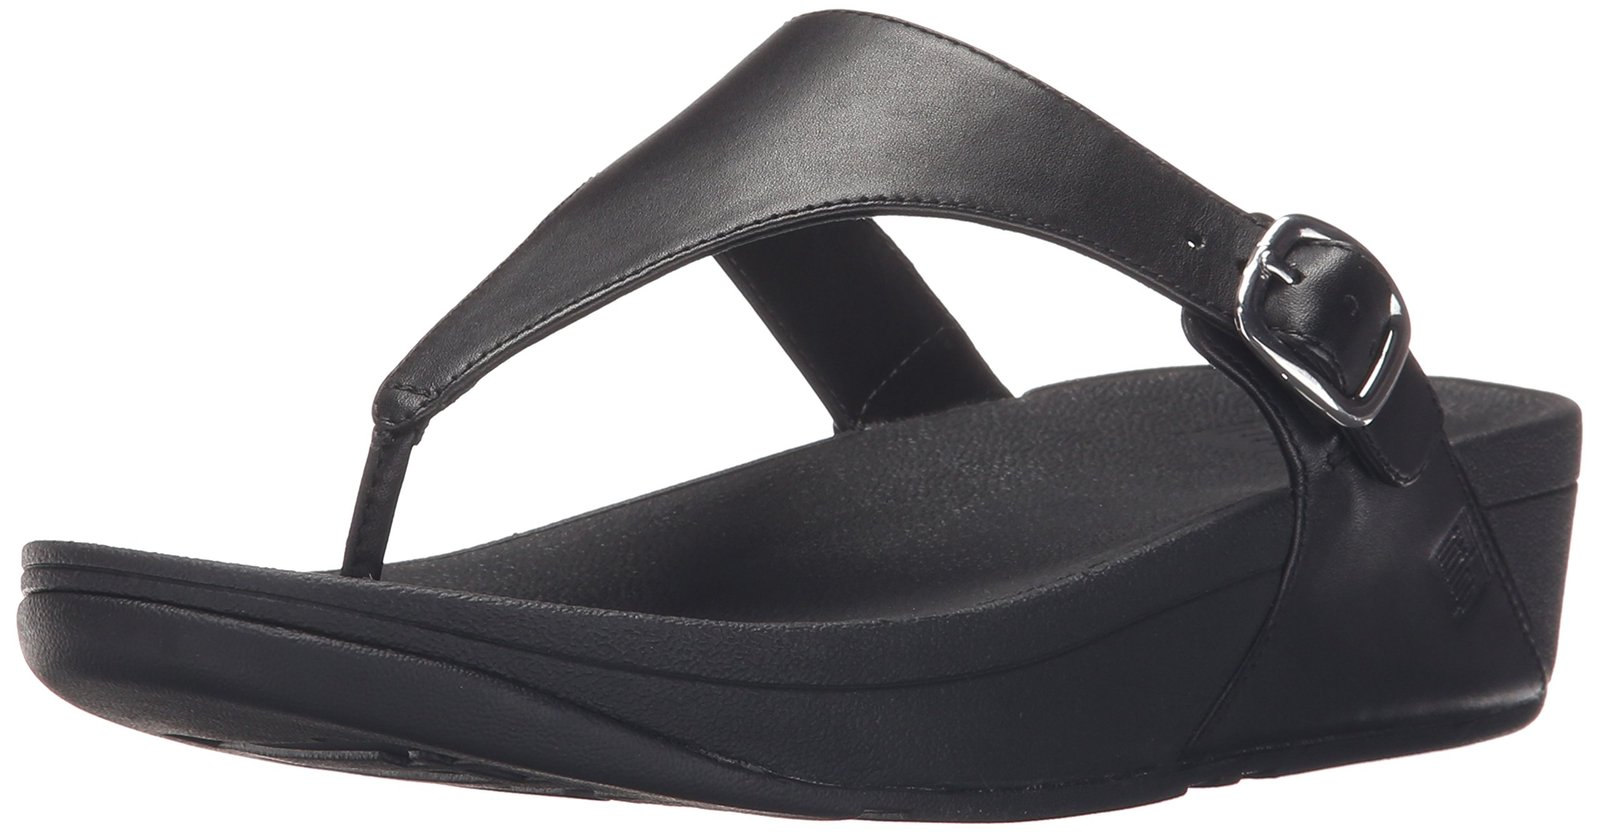 Fitflop Women's The Skinny Flip Flop, All Black, 7 M US